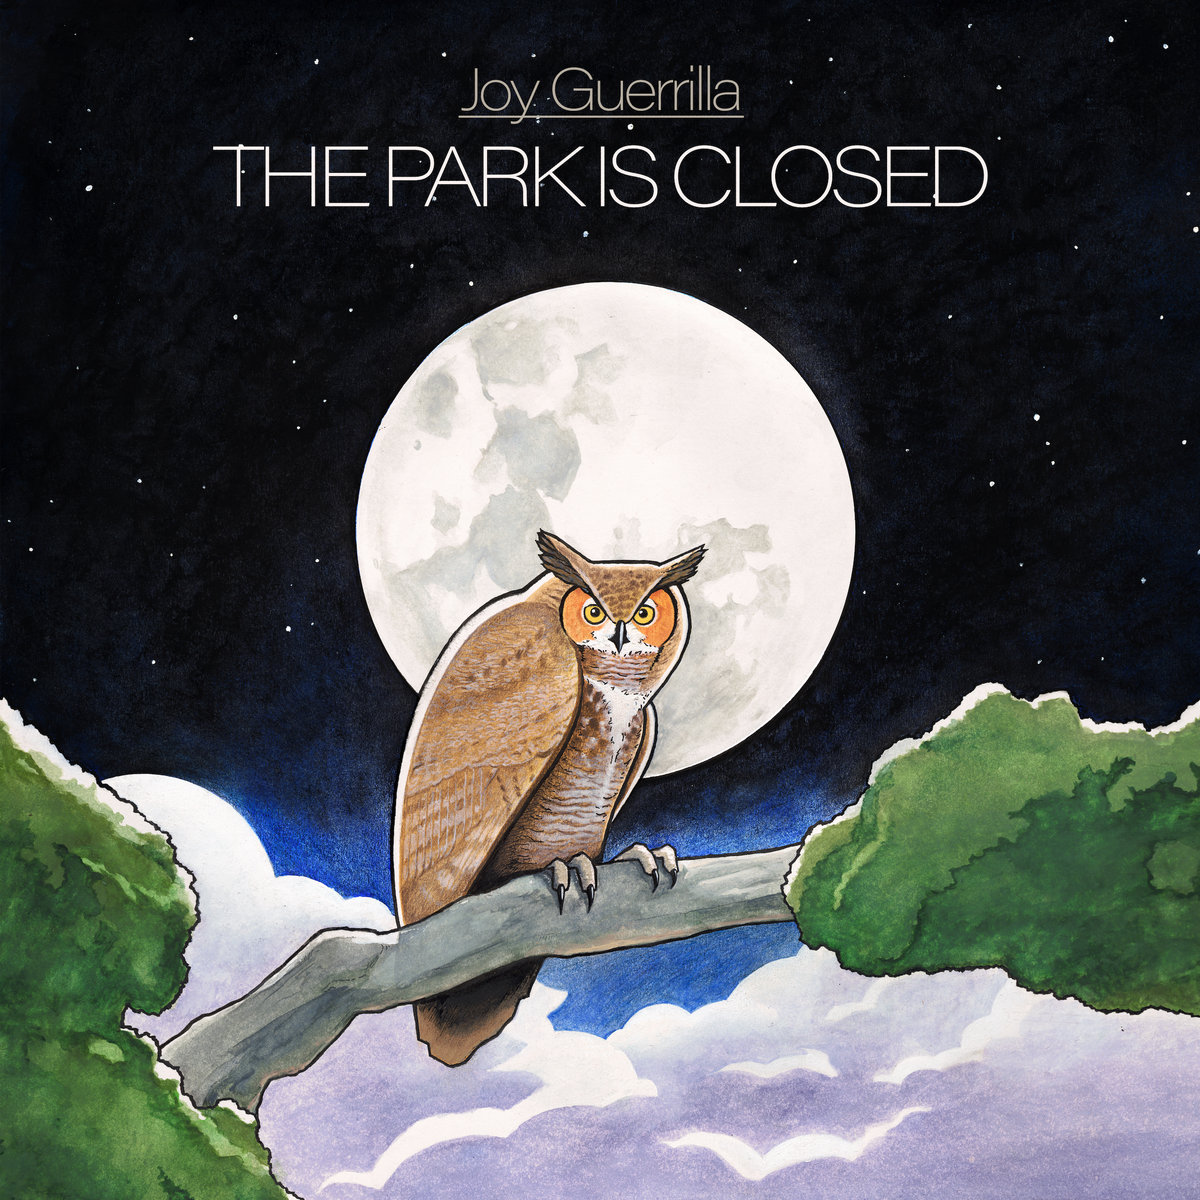 Reseña: JOY GUERRILLA.- 'The Park Is Closed'